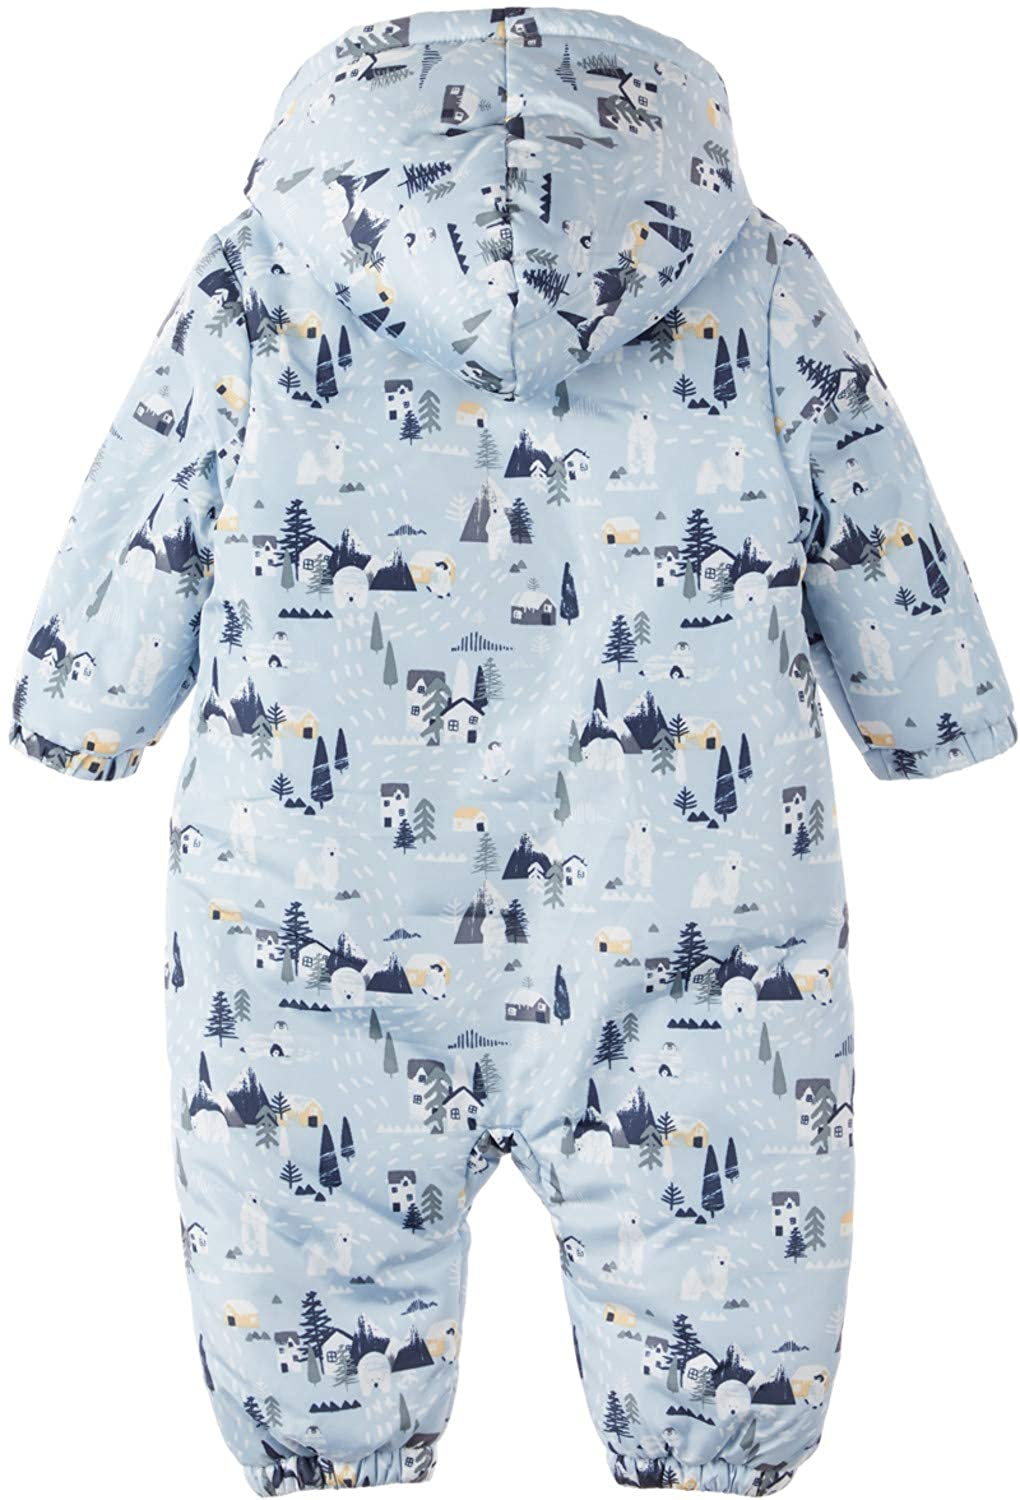 NAME IT Baby Jungen Schneeoverall Wagenanzug NBMMOW Suit